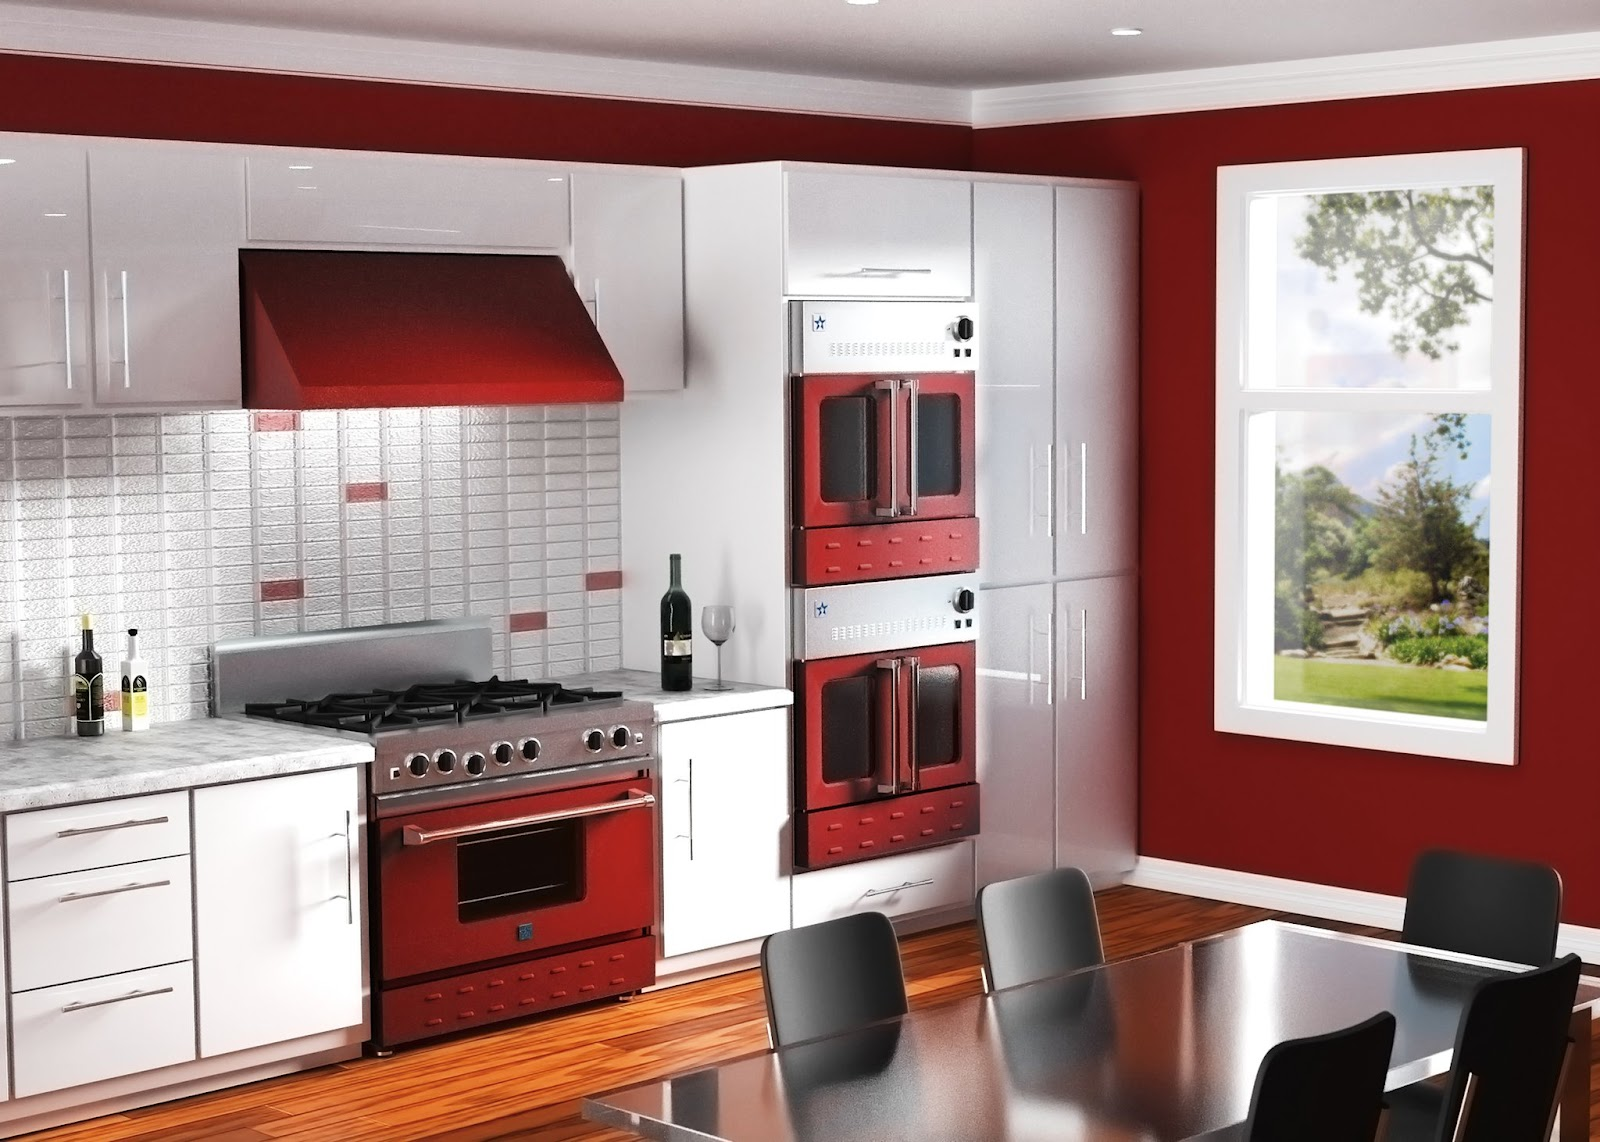 Homewerks really cool stuff for the home may 2012 - Red kitchen appliances ...